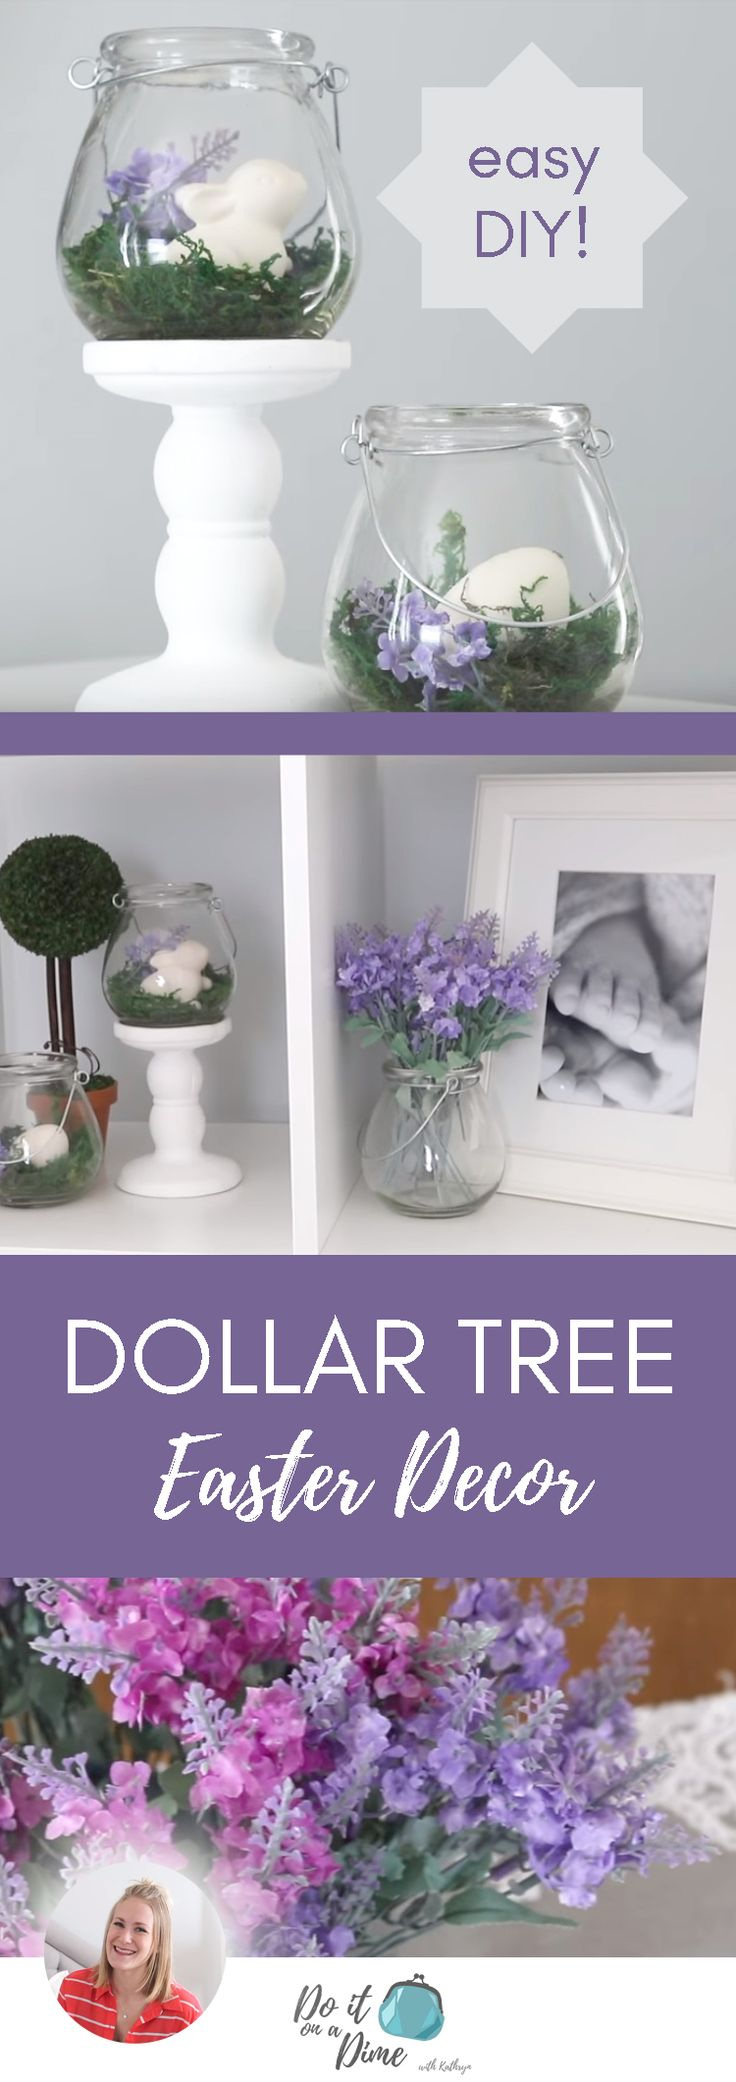 Amazing Dollar Tree Finds & Easter DIY